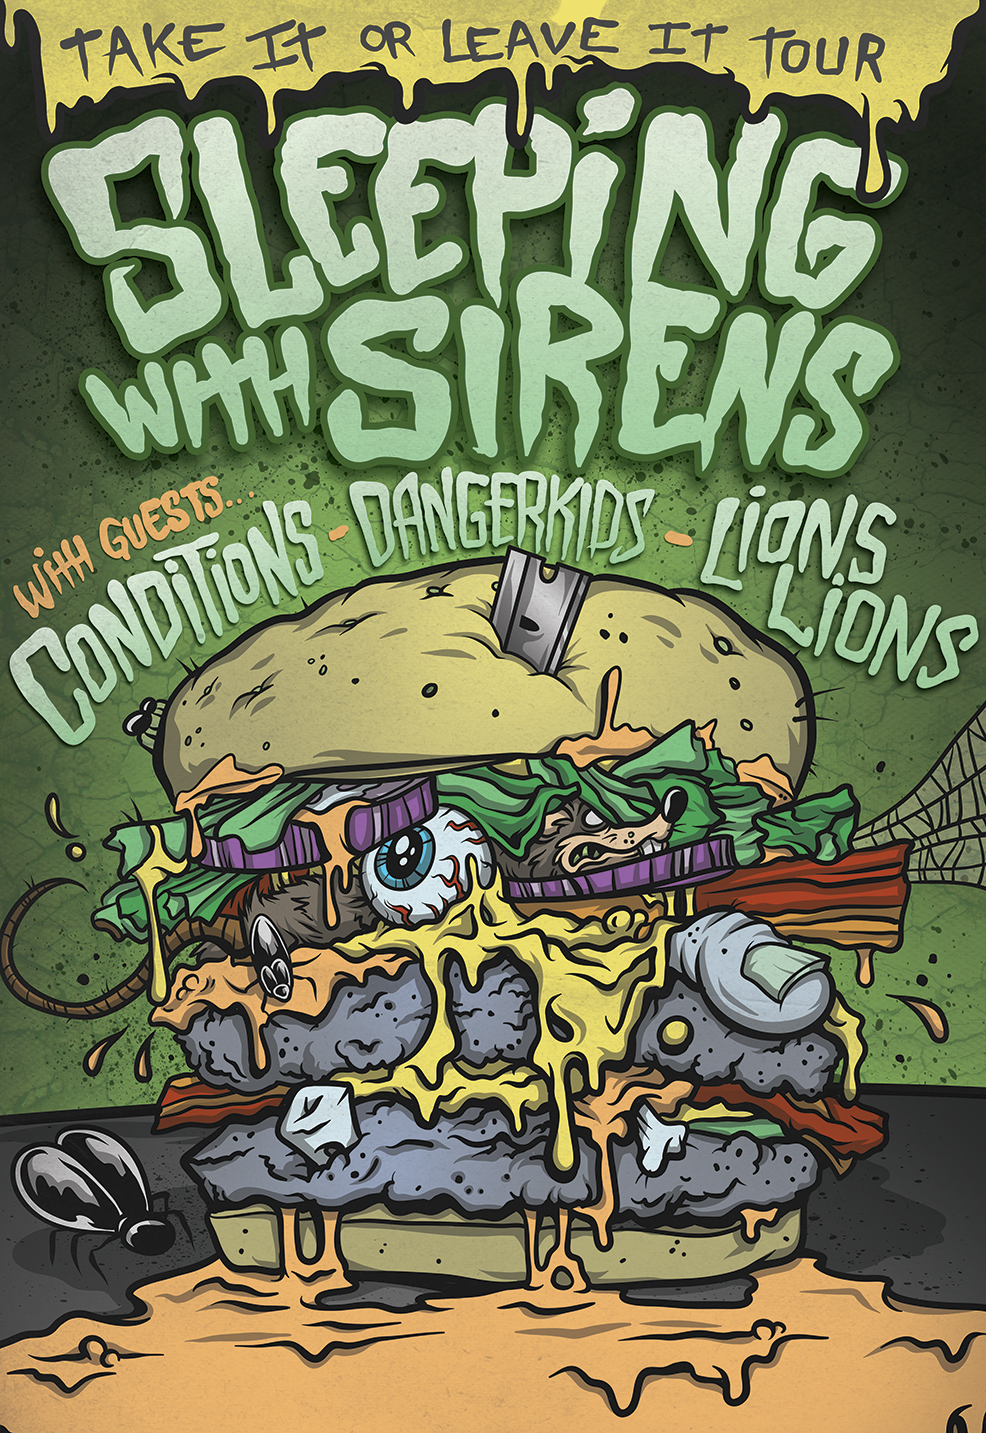 ABOVE: SWS EARLY TOUR ADMAT FEATURING OUTRAGEOUS ILLUSTRATED CHEESEBURGER FILLED WITH GROSS STUFF.